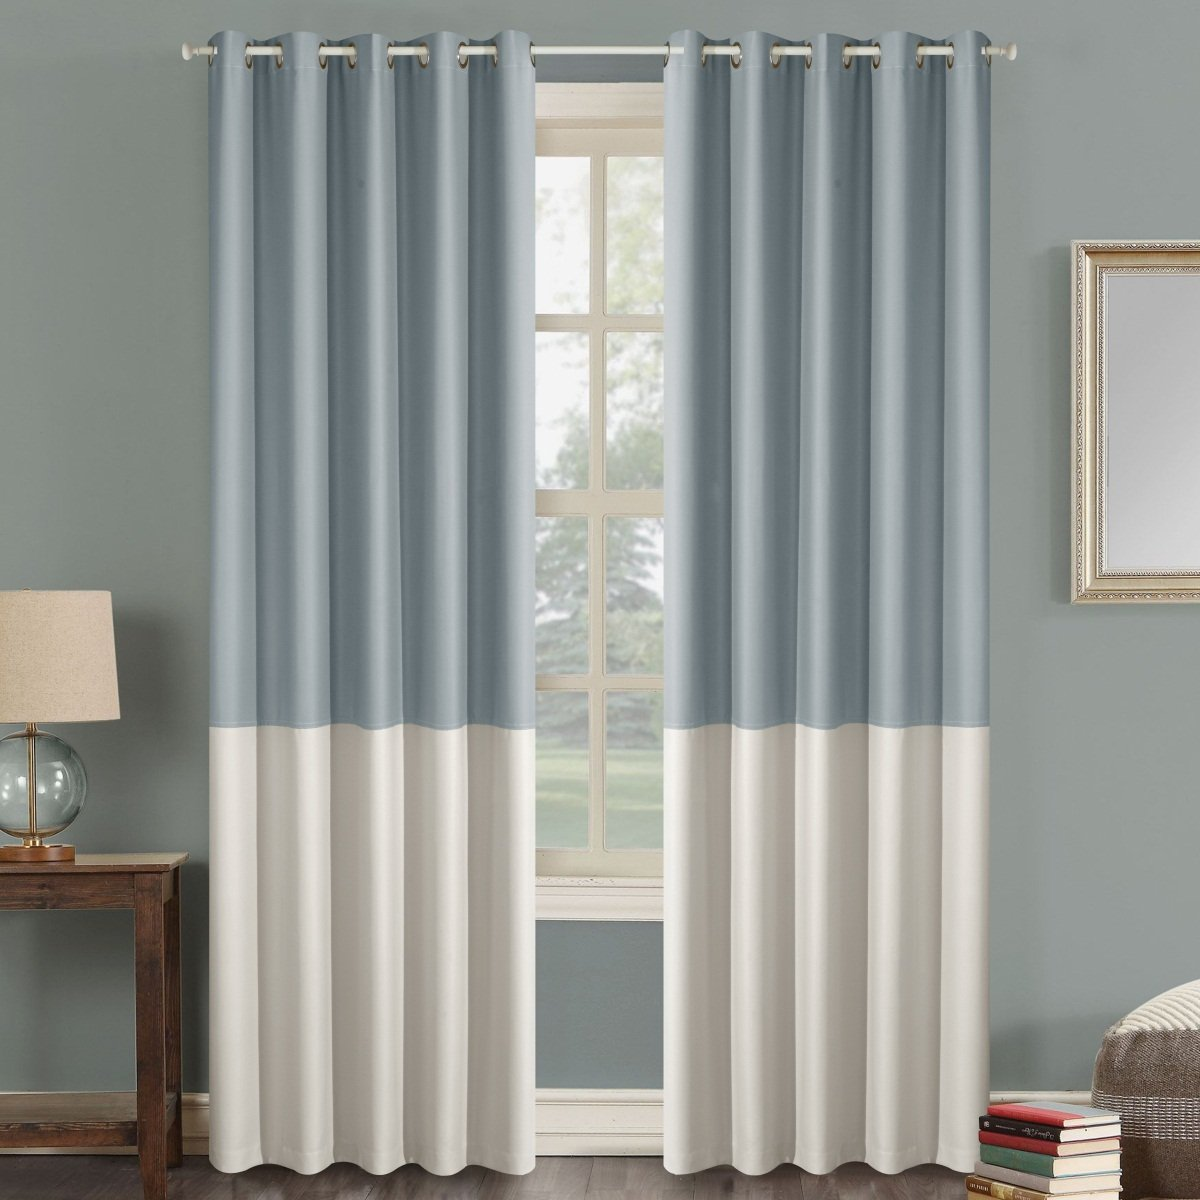 Dreaming Case Stitching Style Two Tone Curtains Color Block Curtains 100'' Wide Blackout Wide Panel Curtains Light Reducing Window Treatment Grommet Top 2 Panels Light Grey & Ivory 100'' W x 102'' L